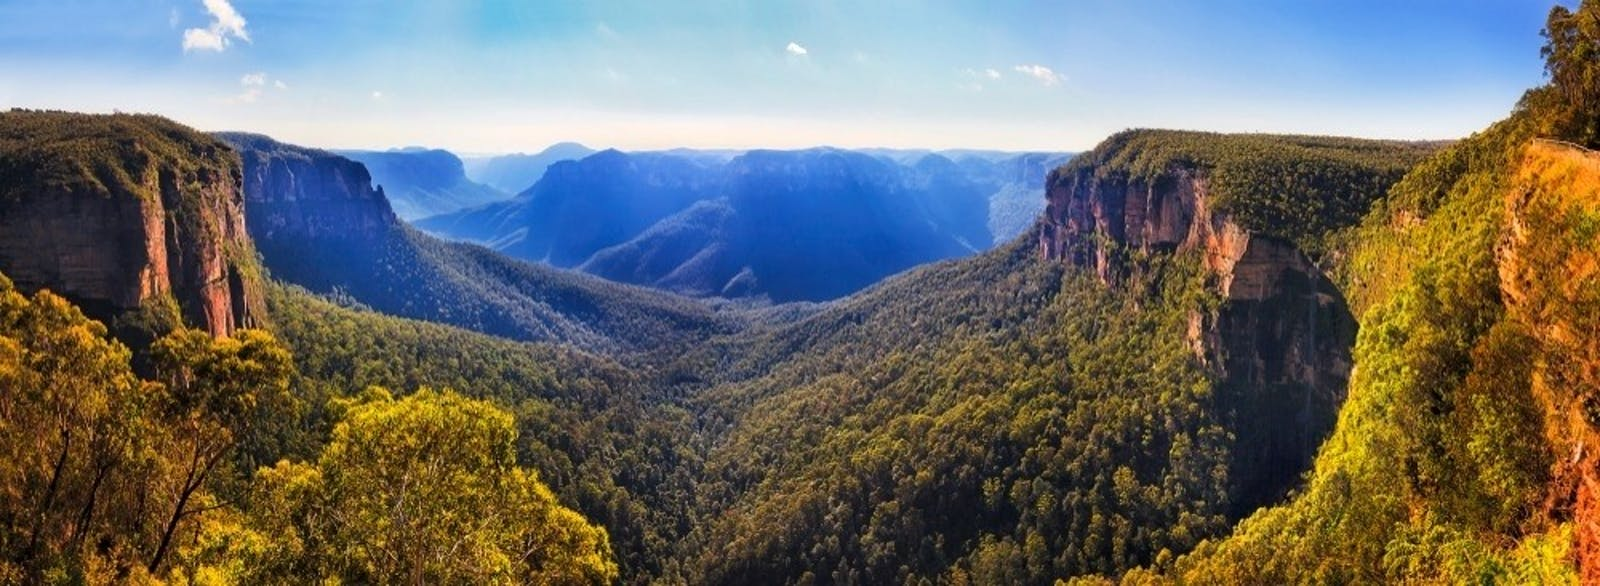 blue mountains optional tour bridal vale waterfall from govett leap lookout